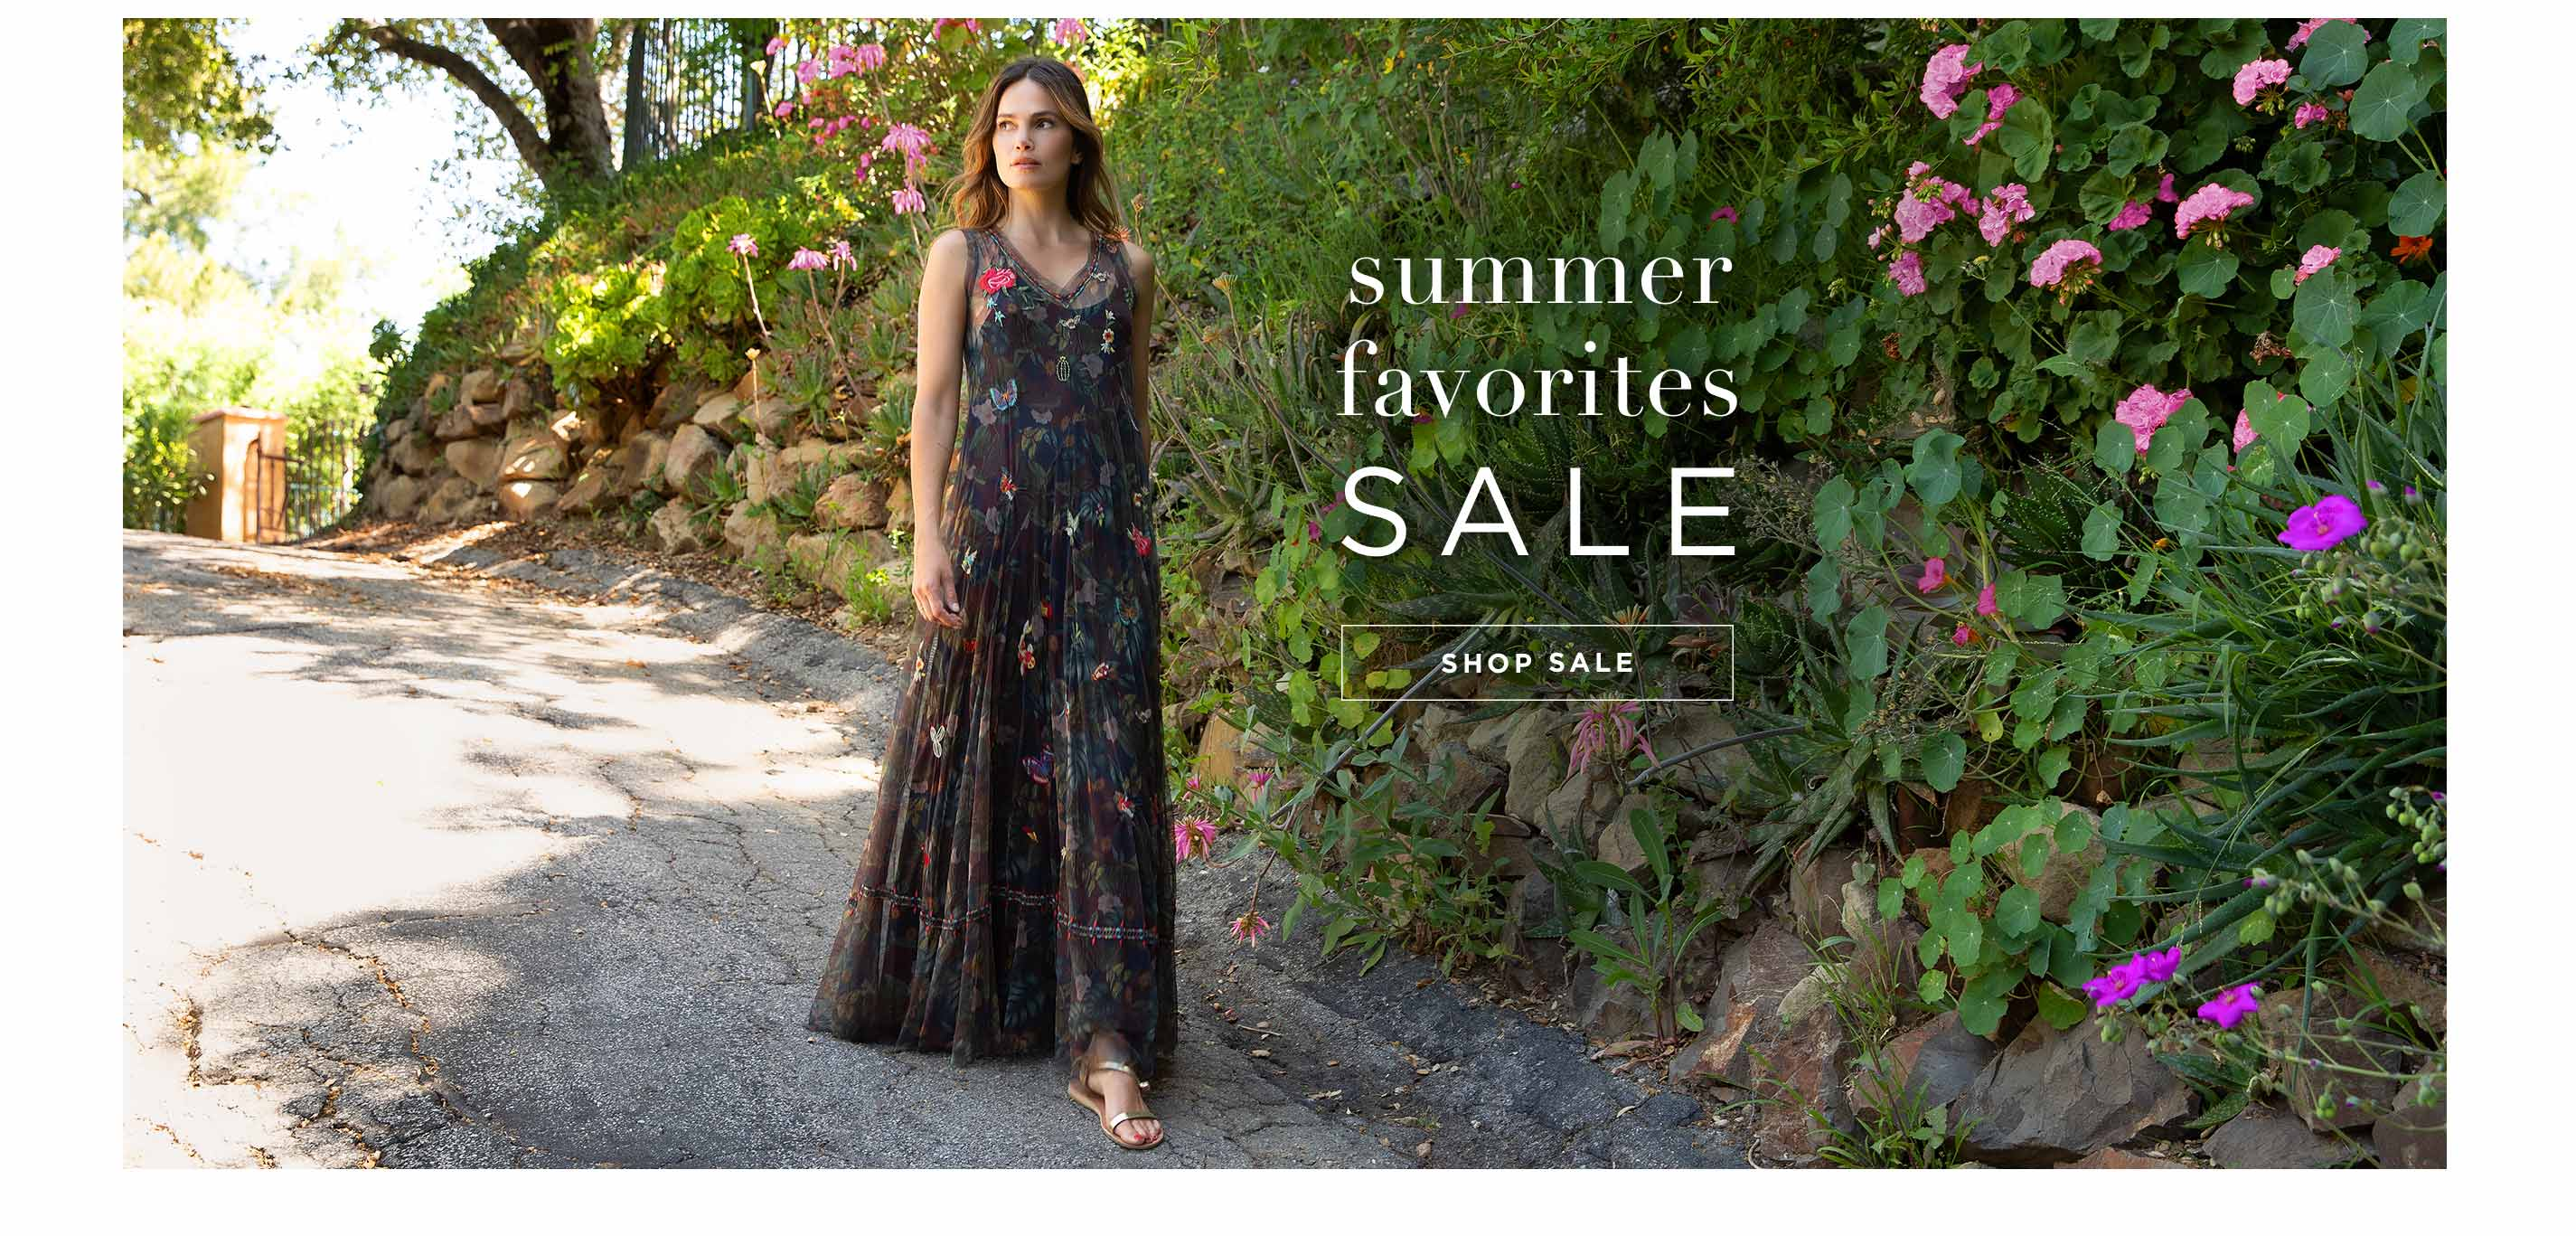 Summer Favorites Sale - Shop Sale